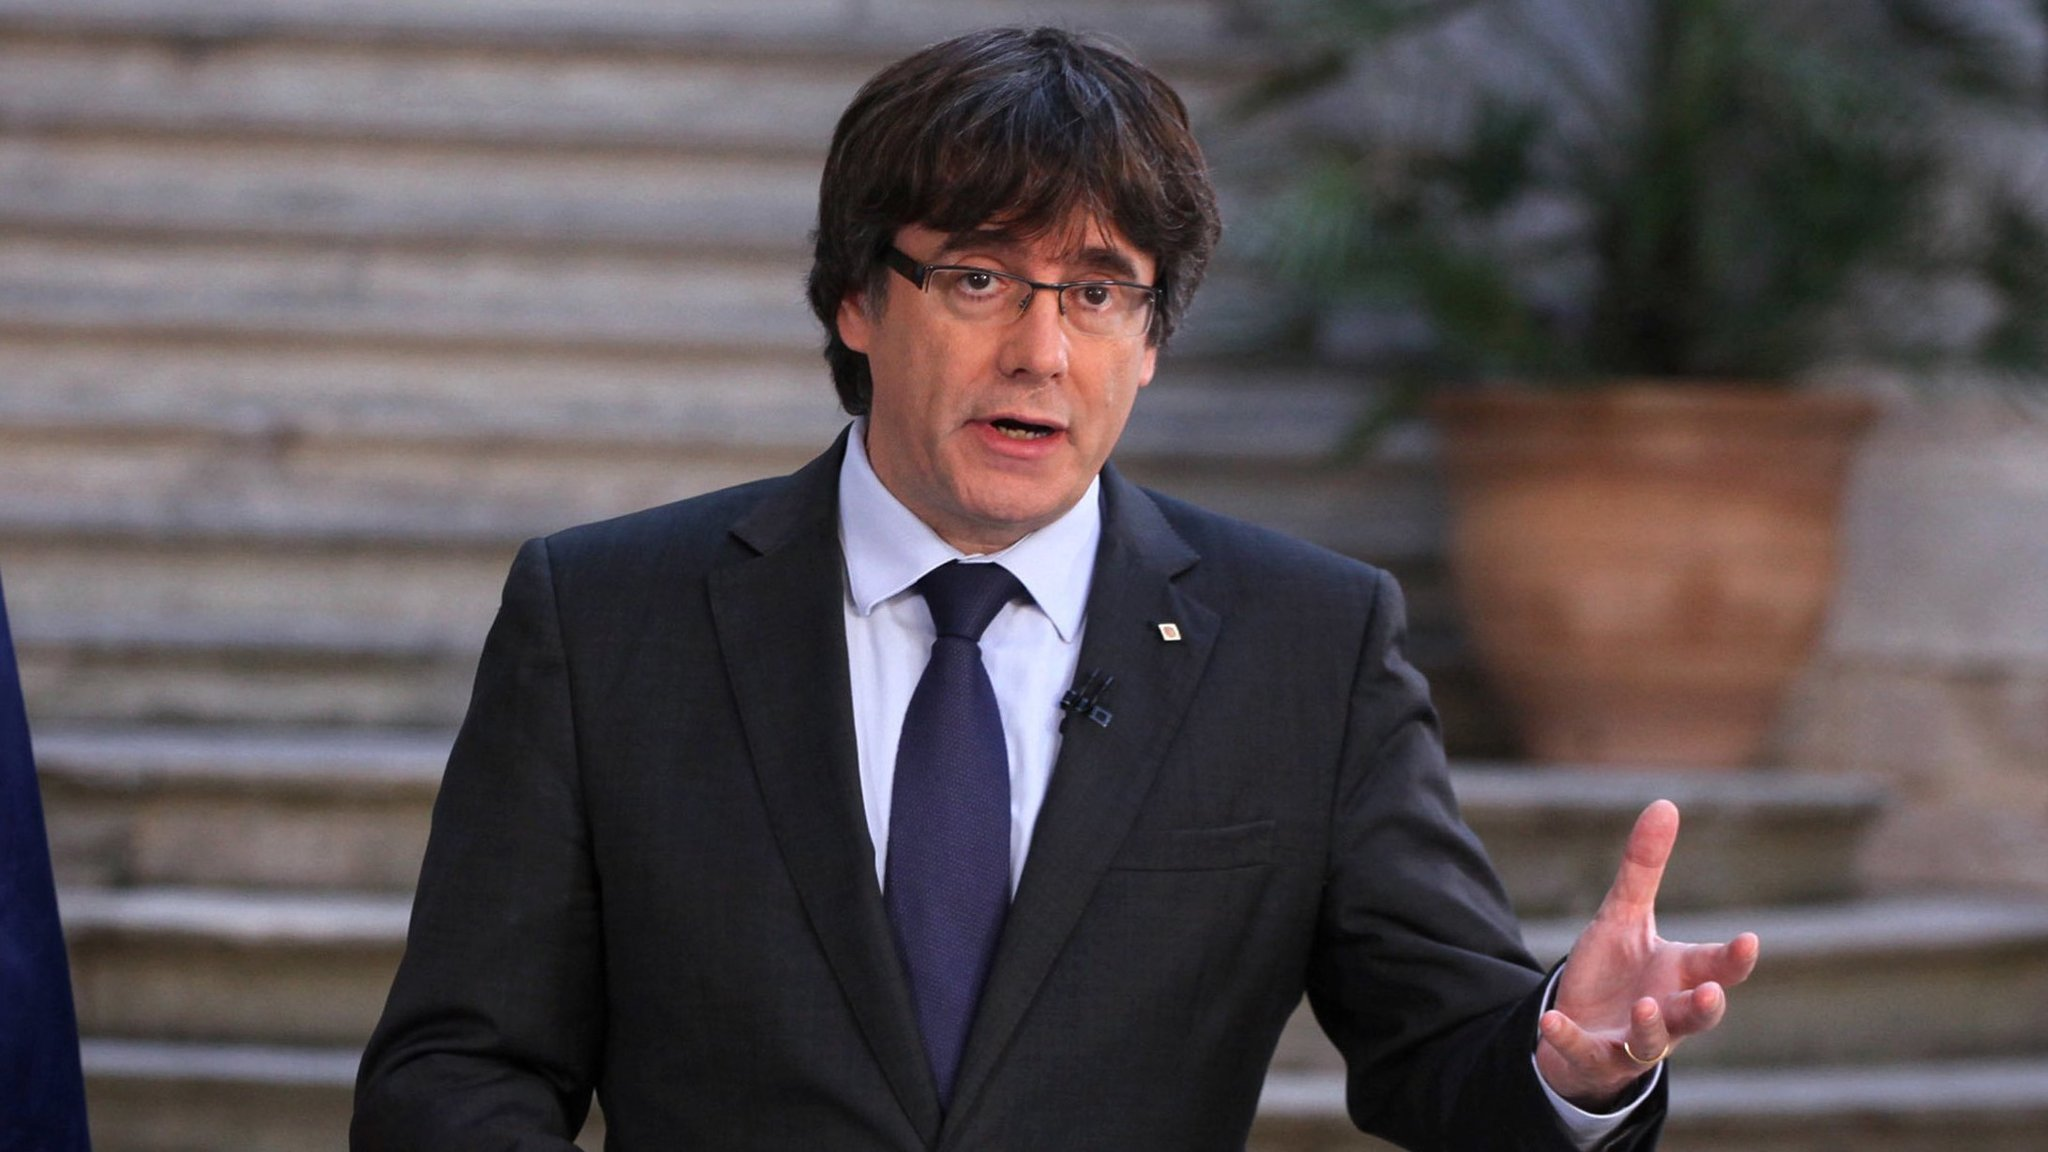 Catalan leader eyes Skype to deliver secession message